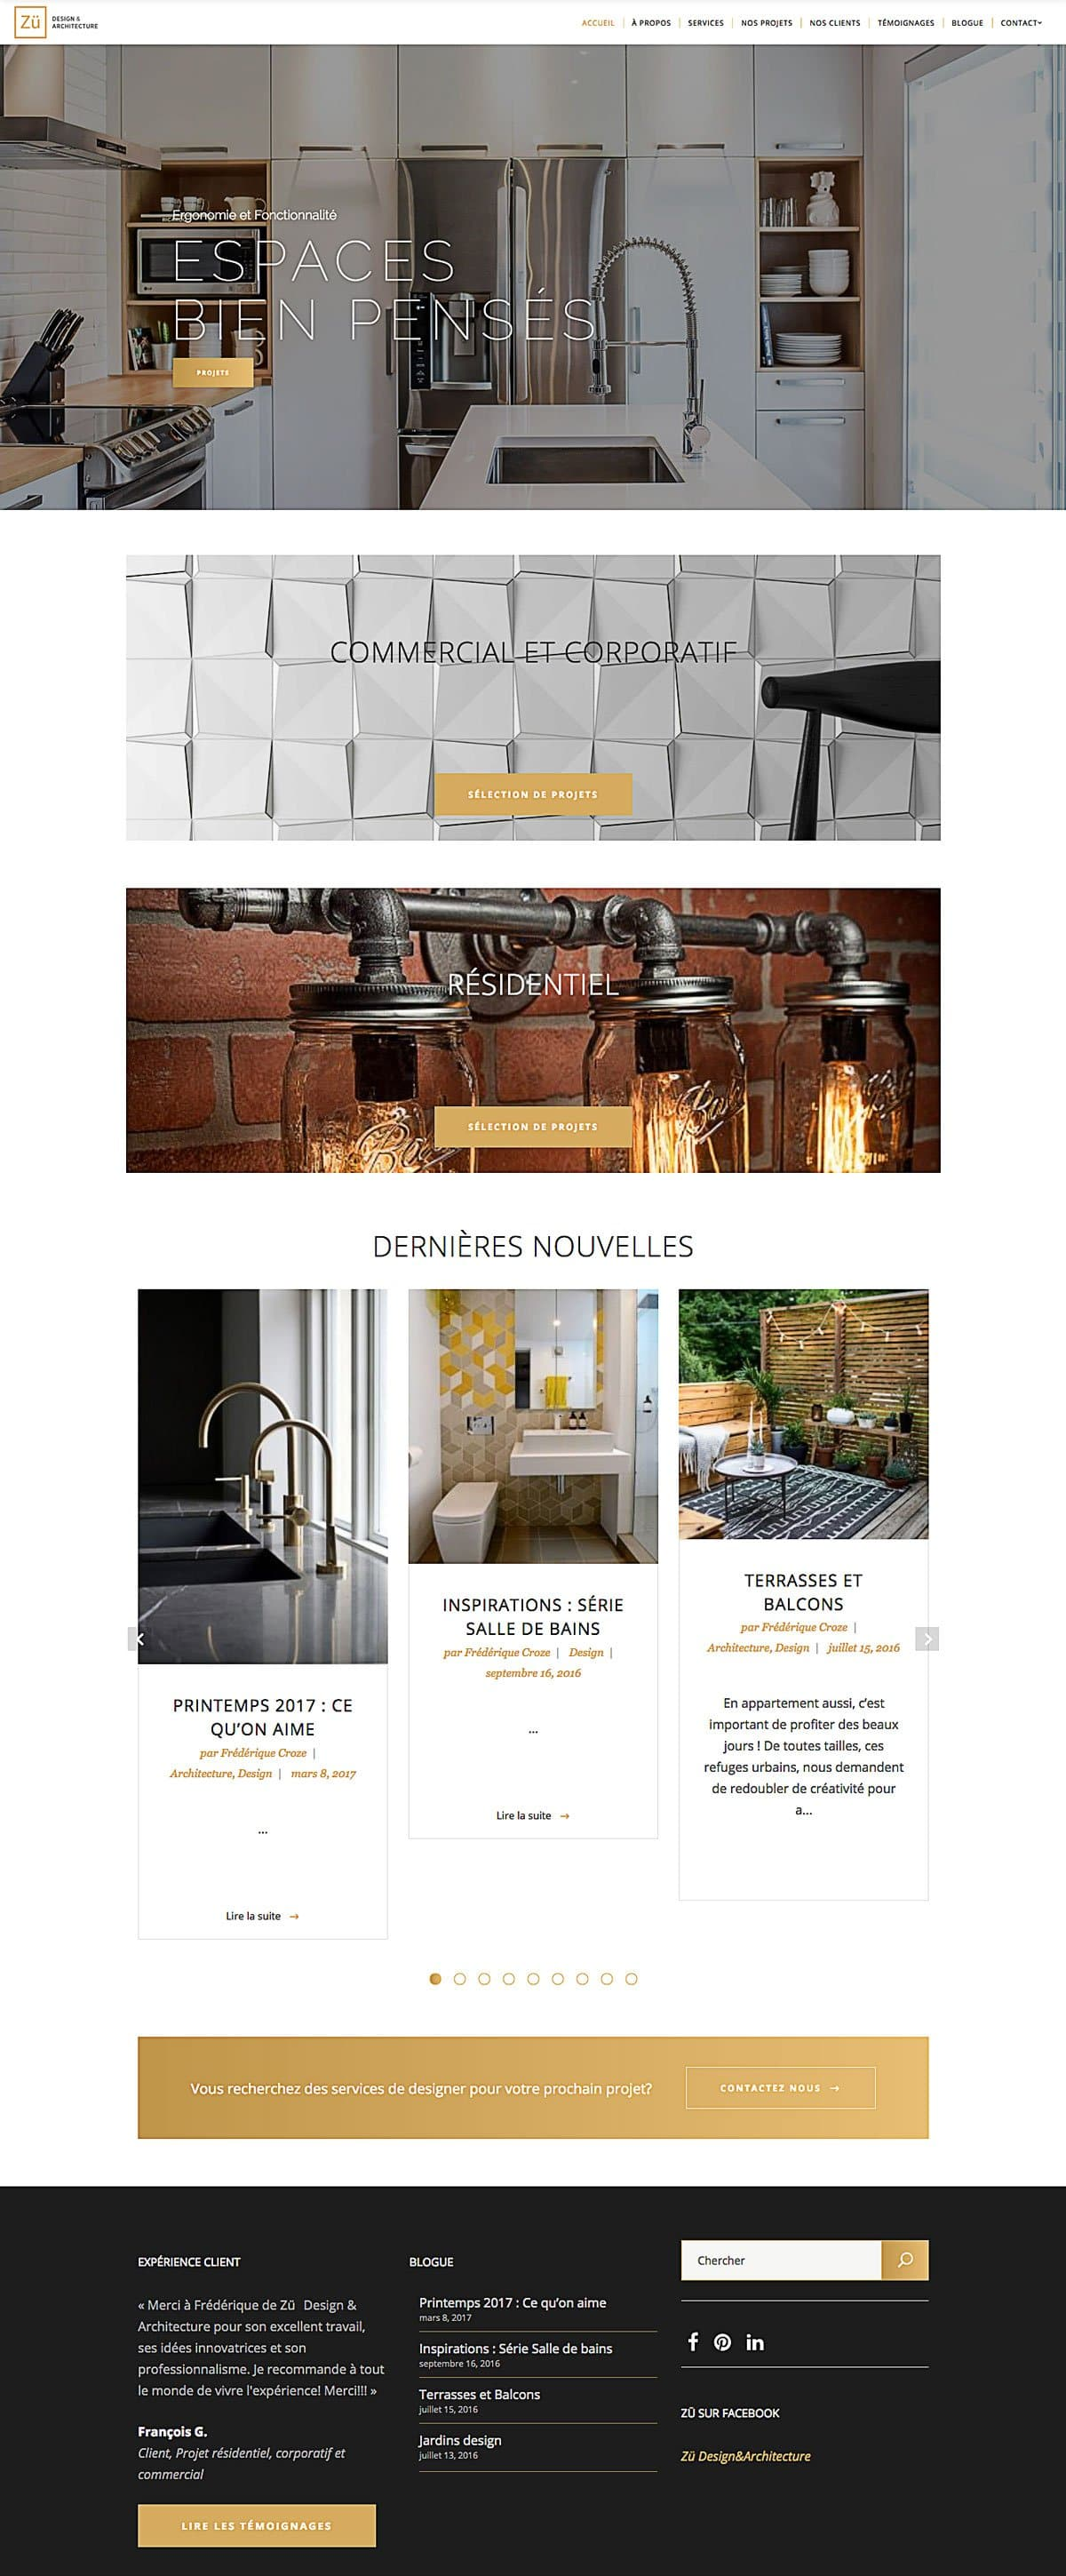 zu_dezign_architecture_site_page Zu Design & Architecture - Site